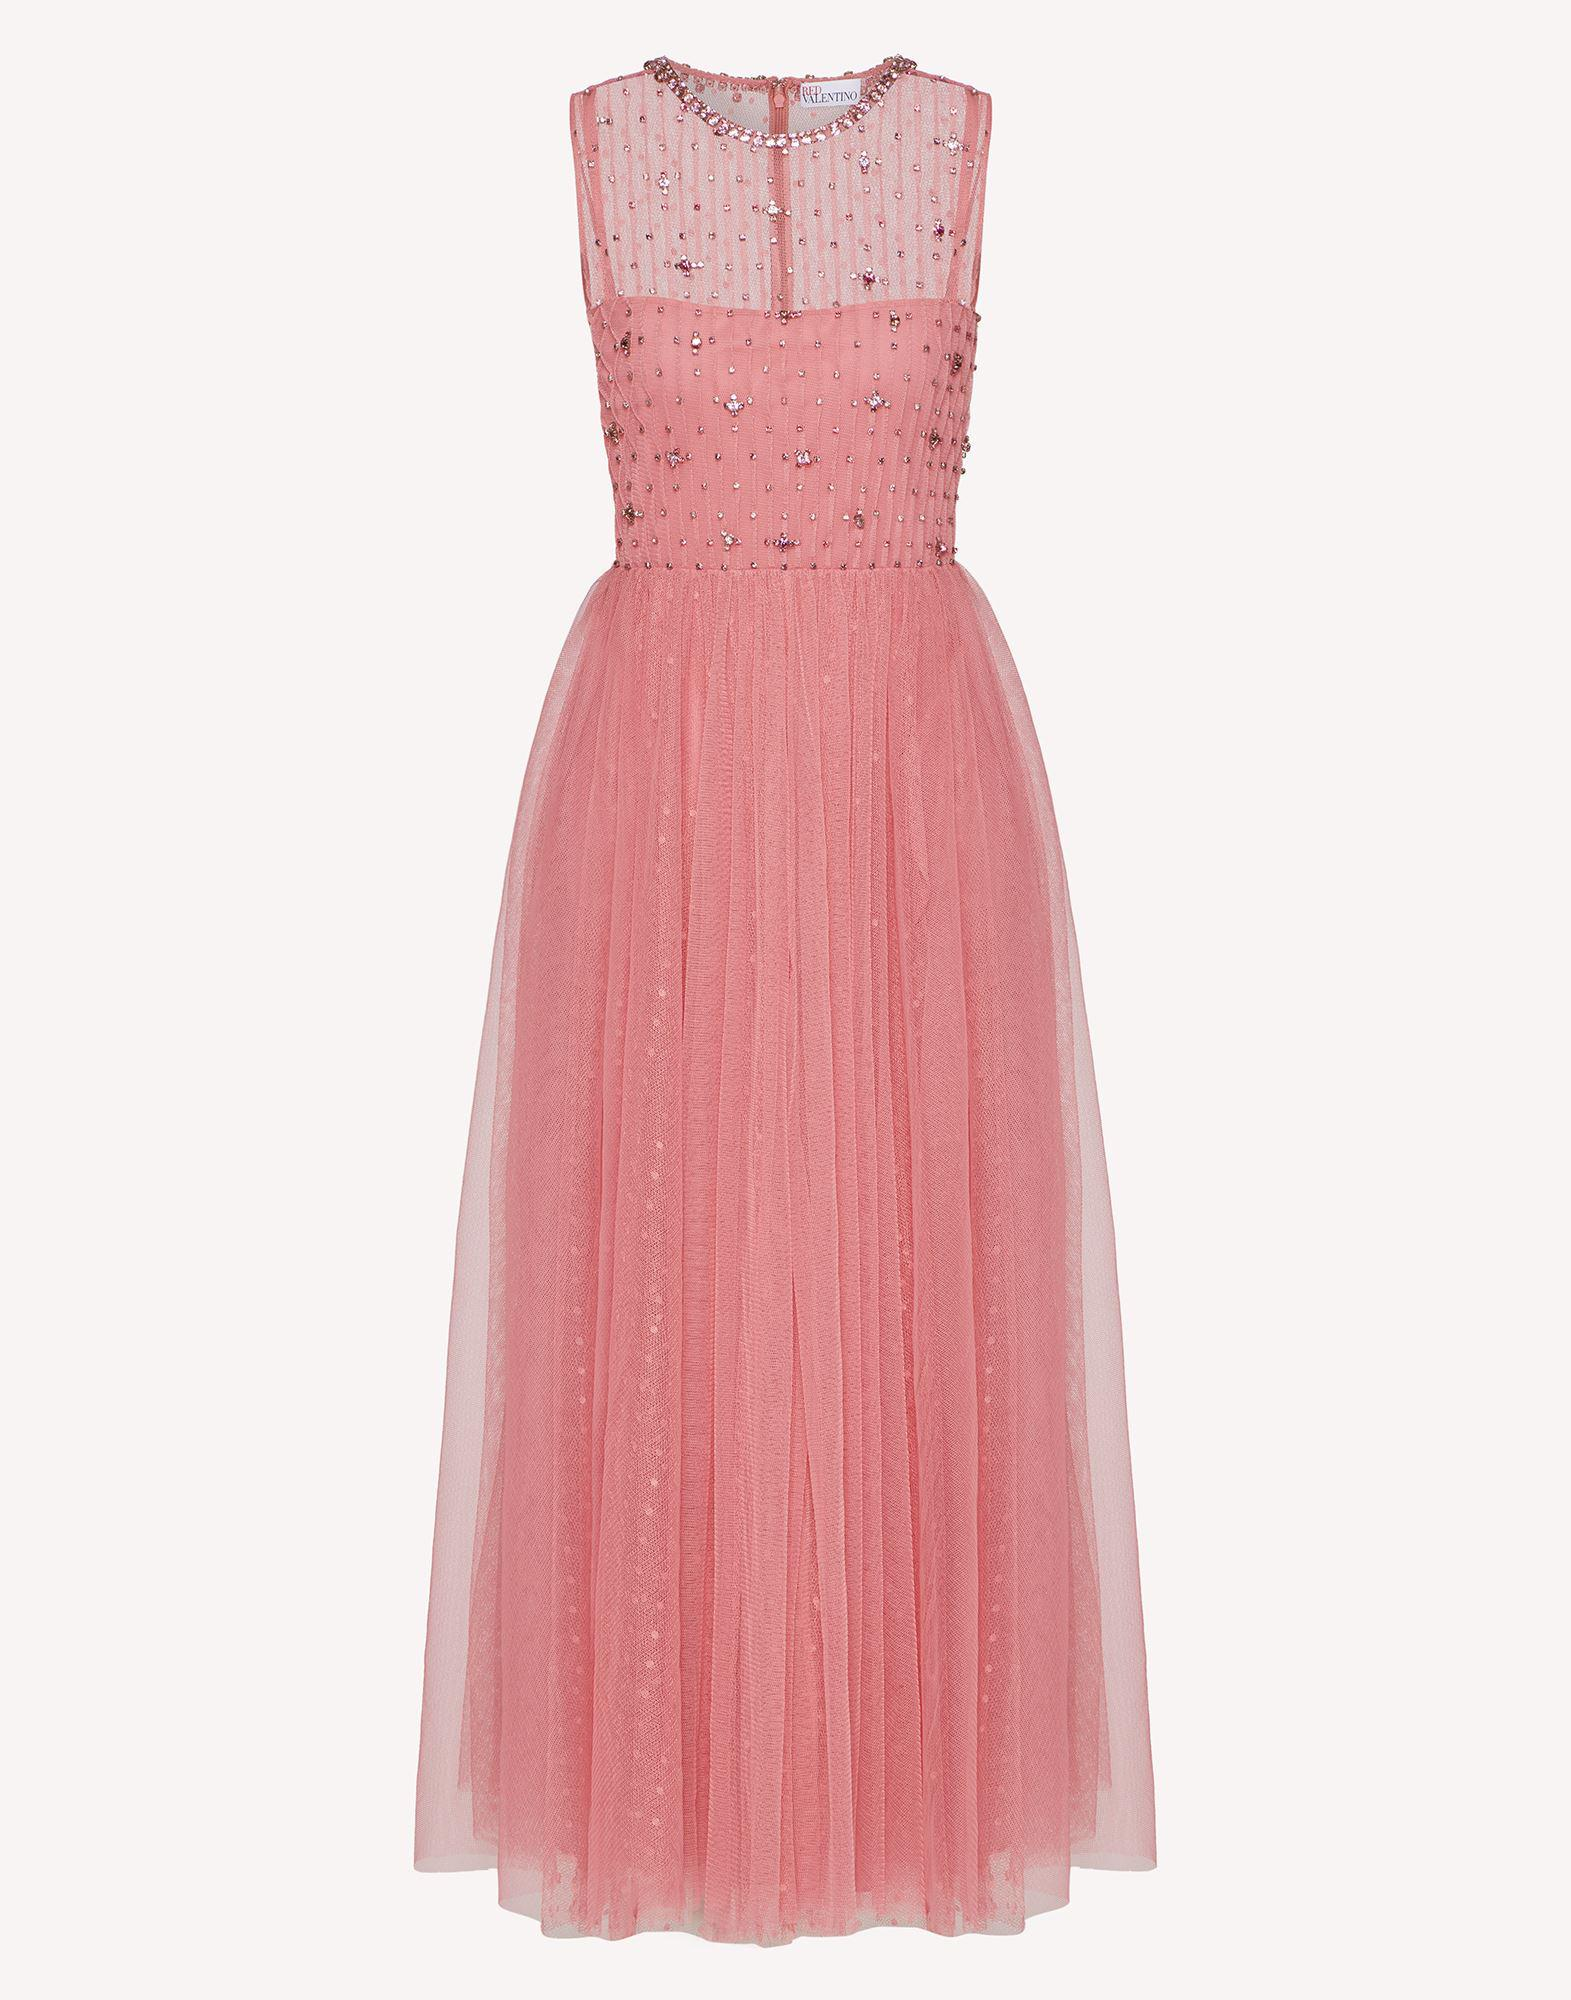 POINT D'ESPRIT TULLE DRESS WITH RHINESTONE EMBROIDERY 4